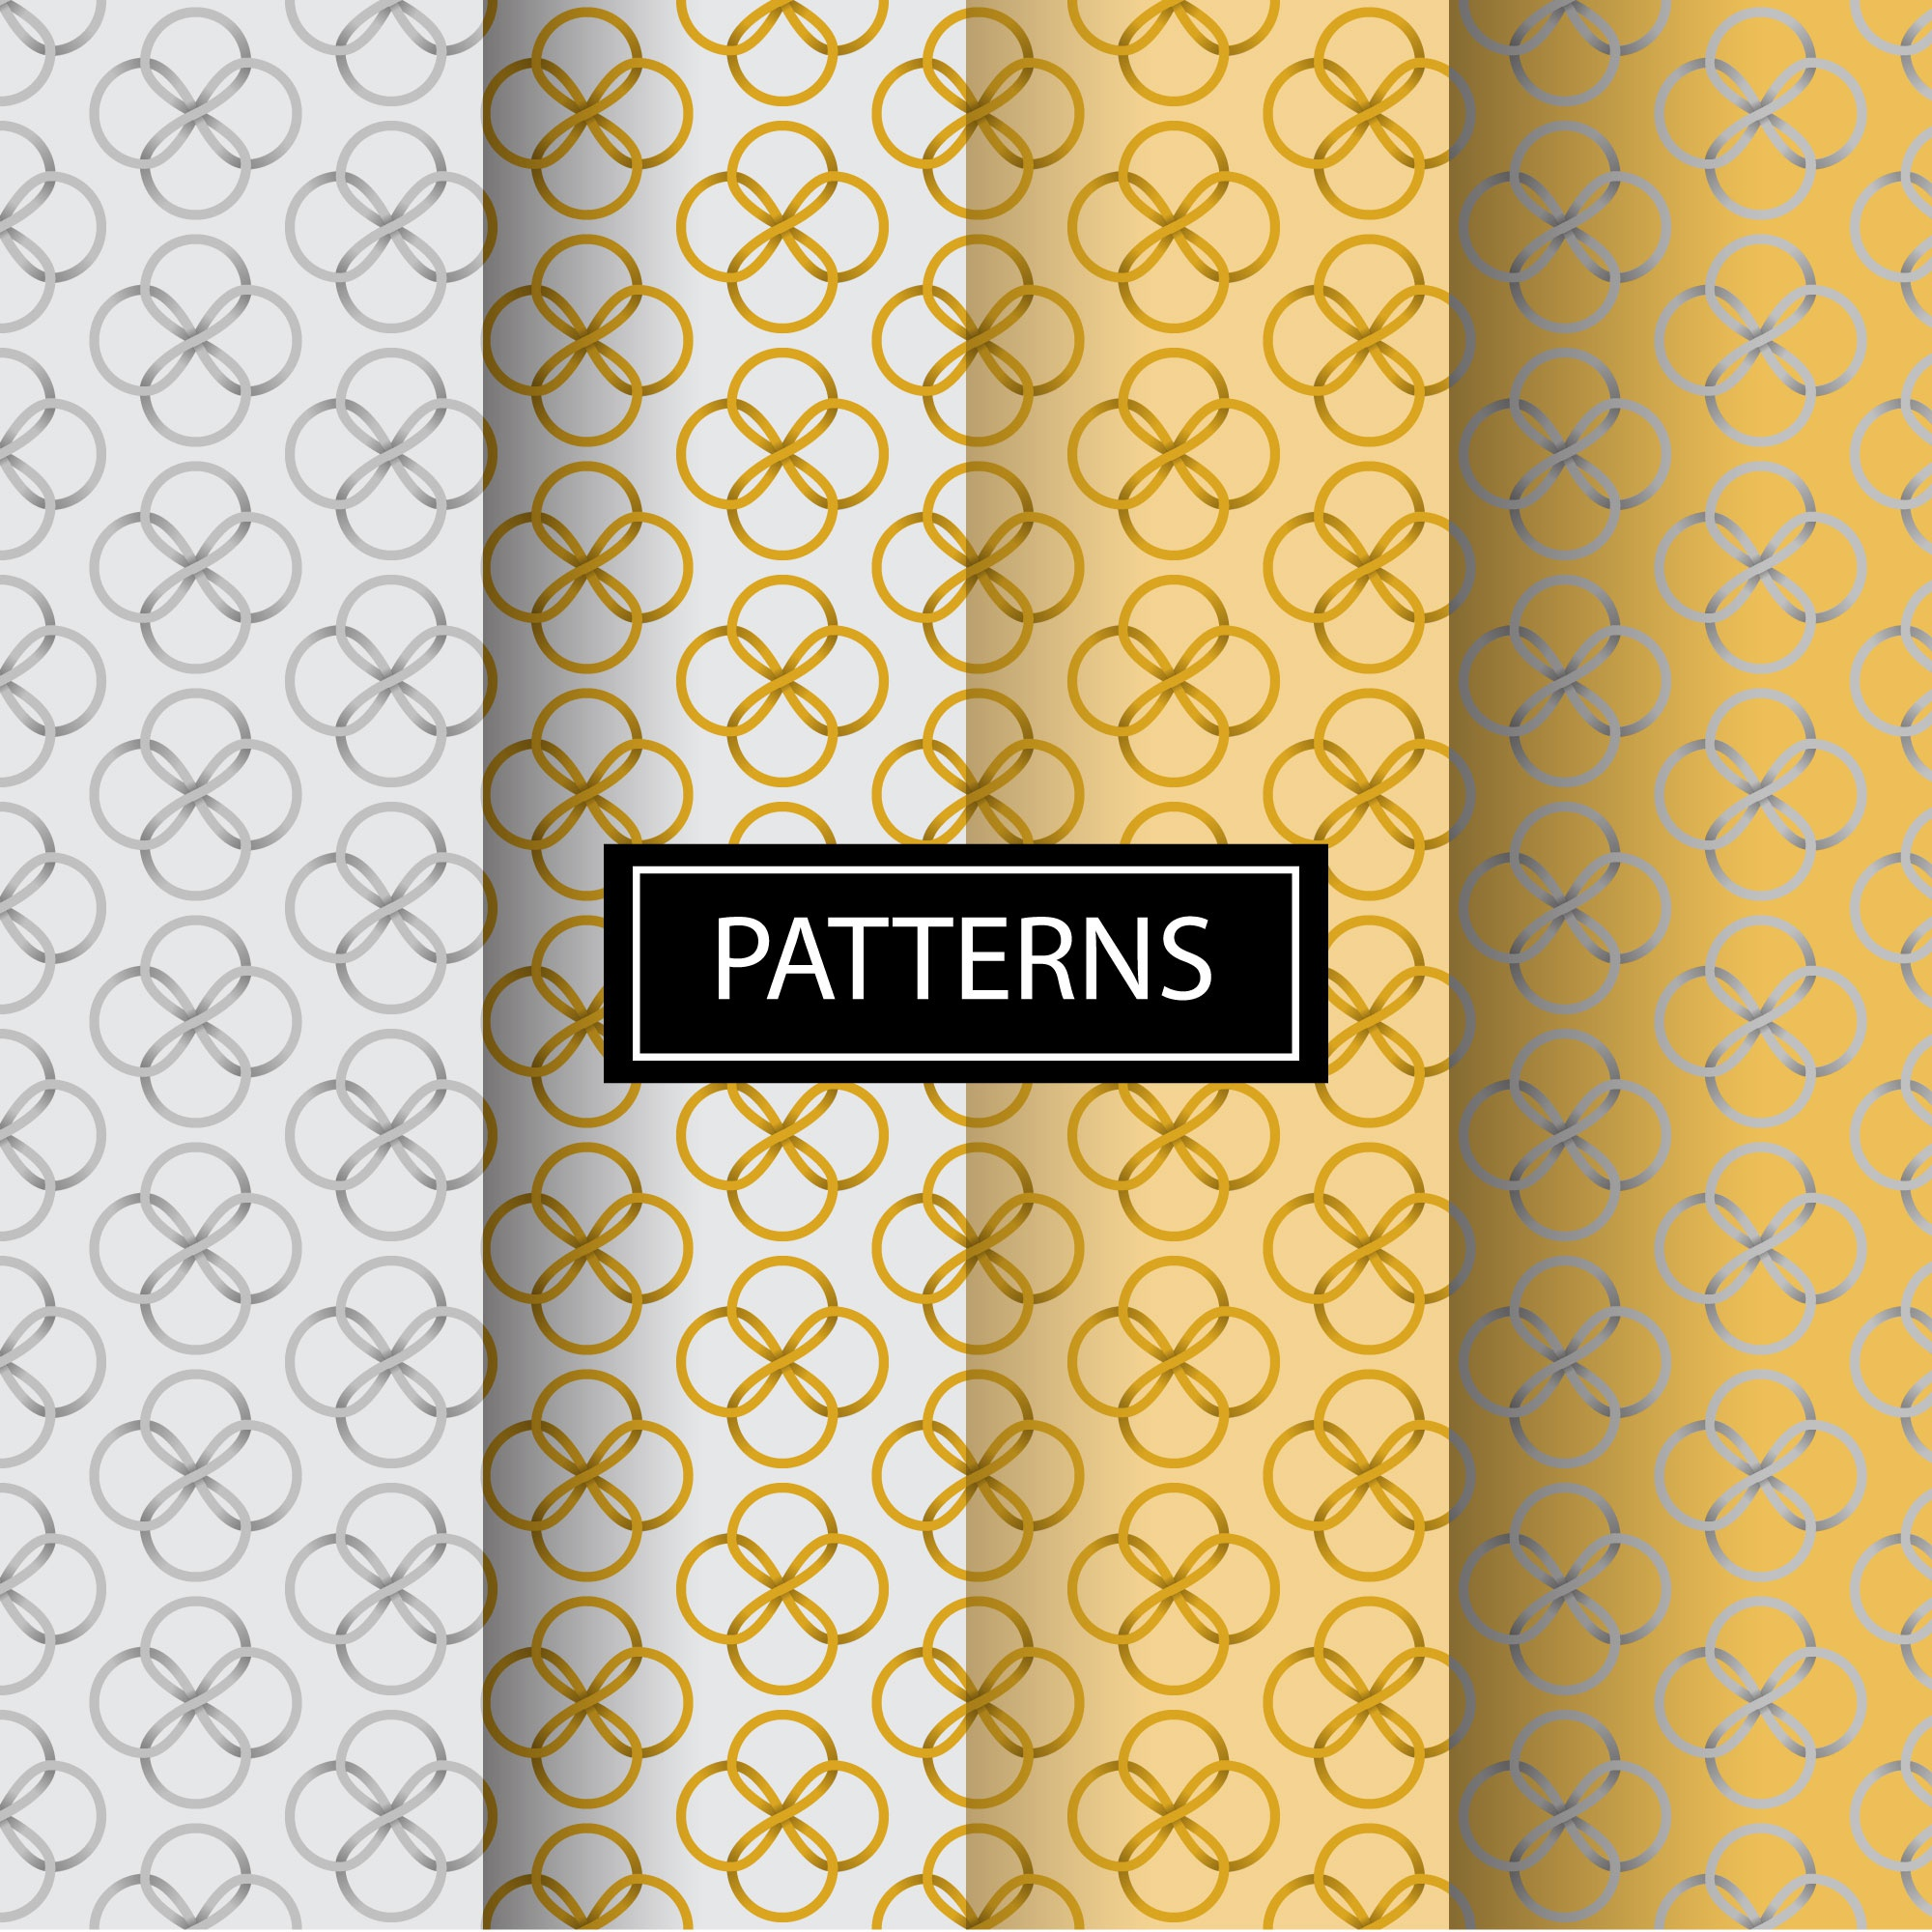 Gold and Silver Patterns